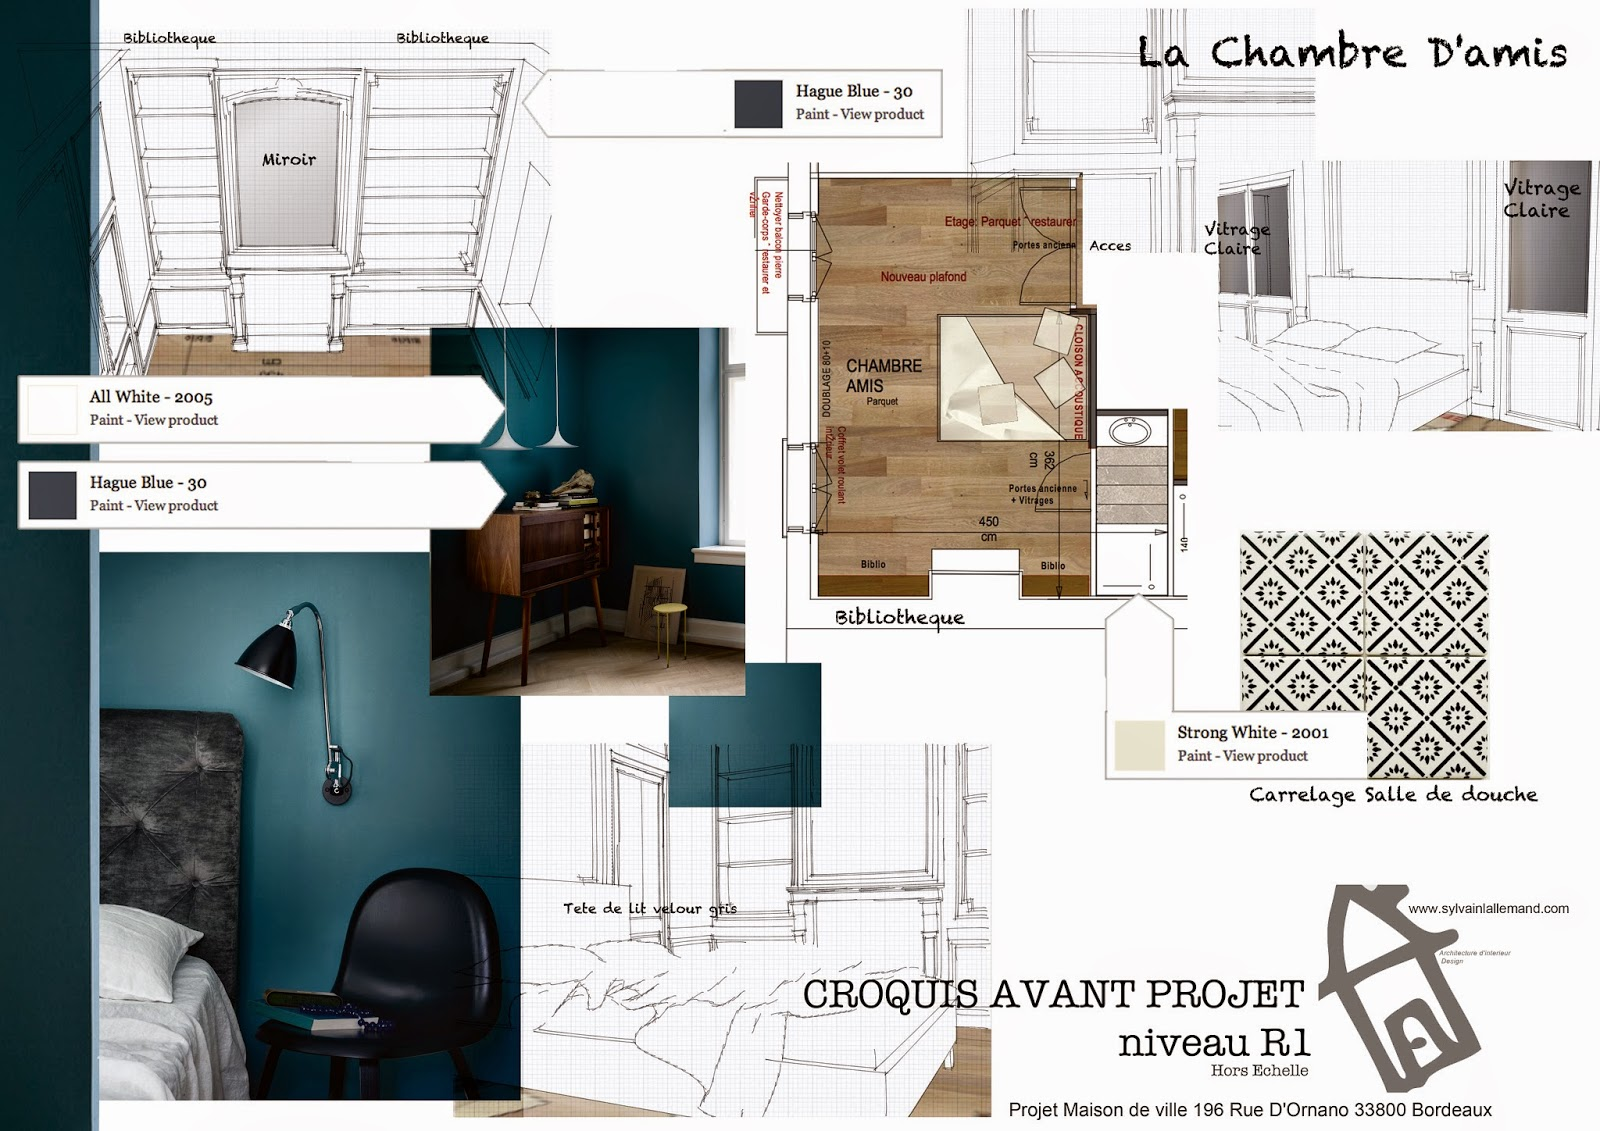 Renovation et transforamation d 39 une echope bordealaise for Architecte interieur paris